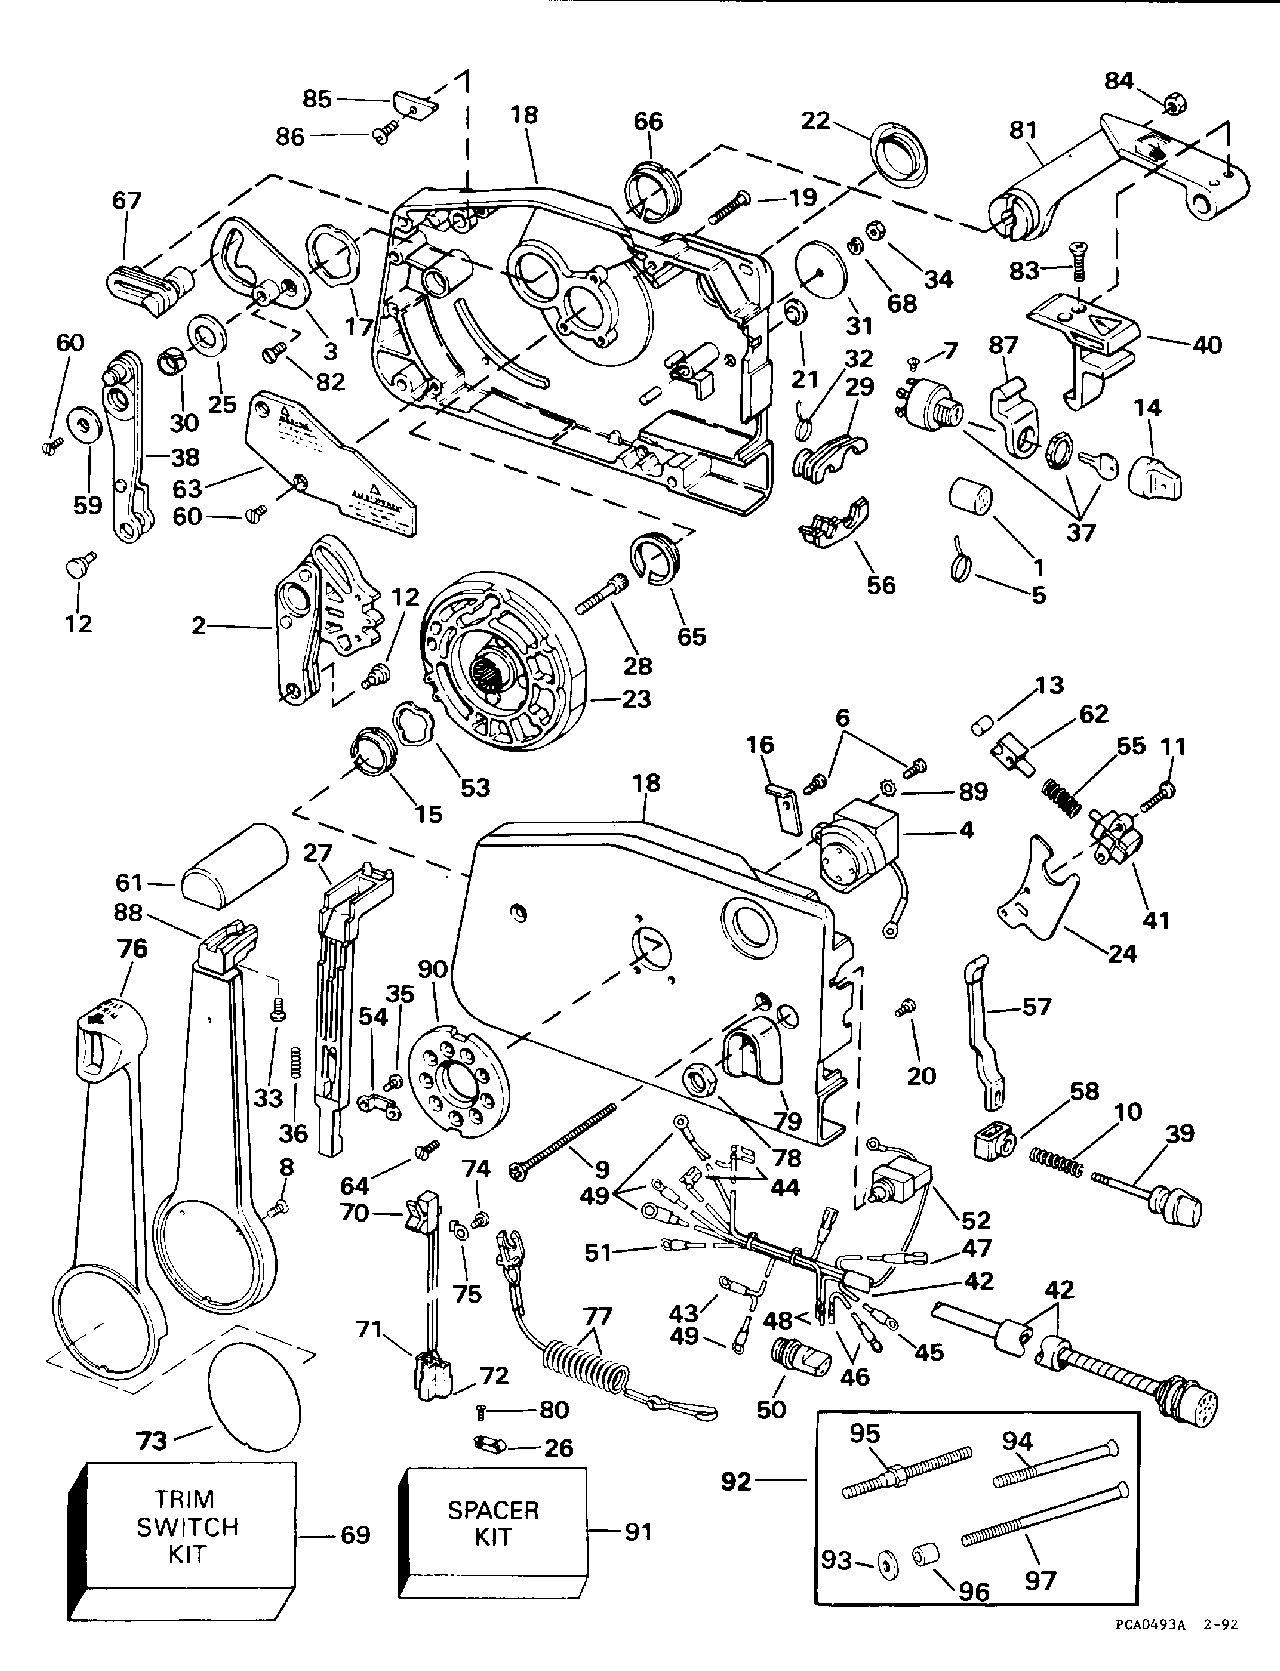 Wiring Diagrams 1991 70 Hp Evinrude. Diagram. Auto Wiring